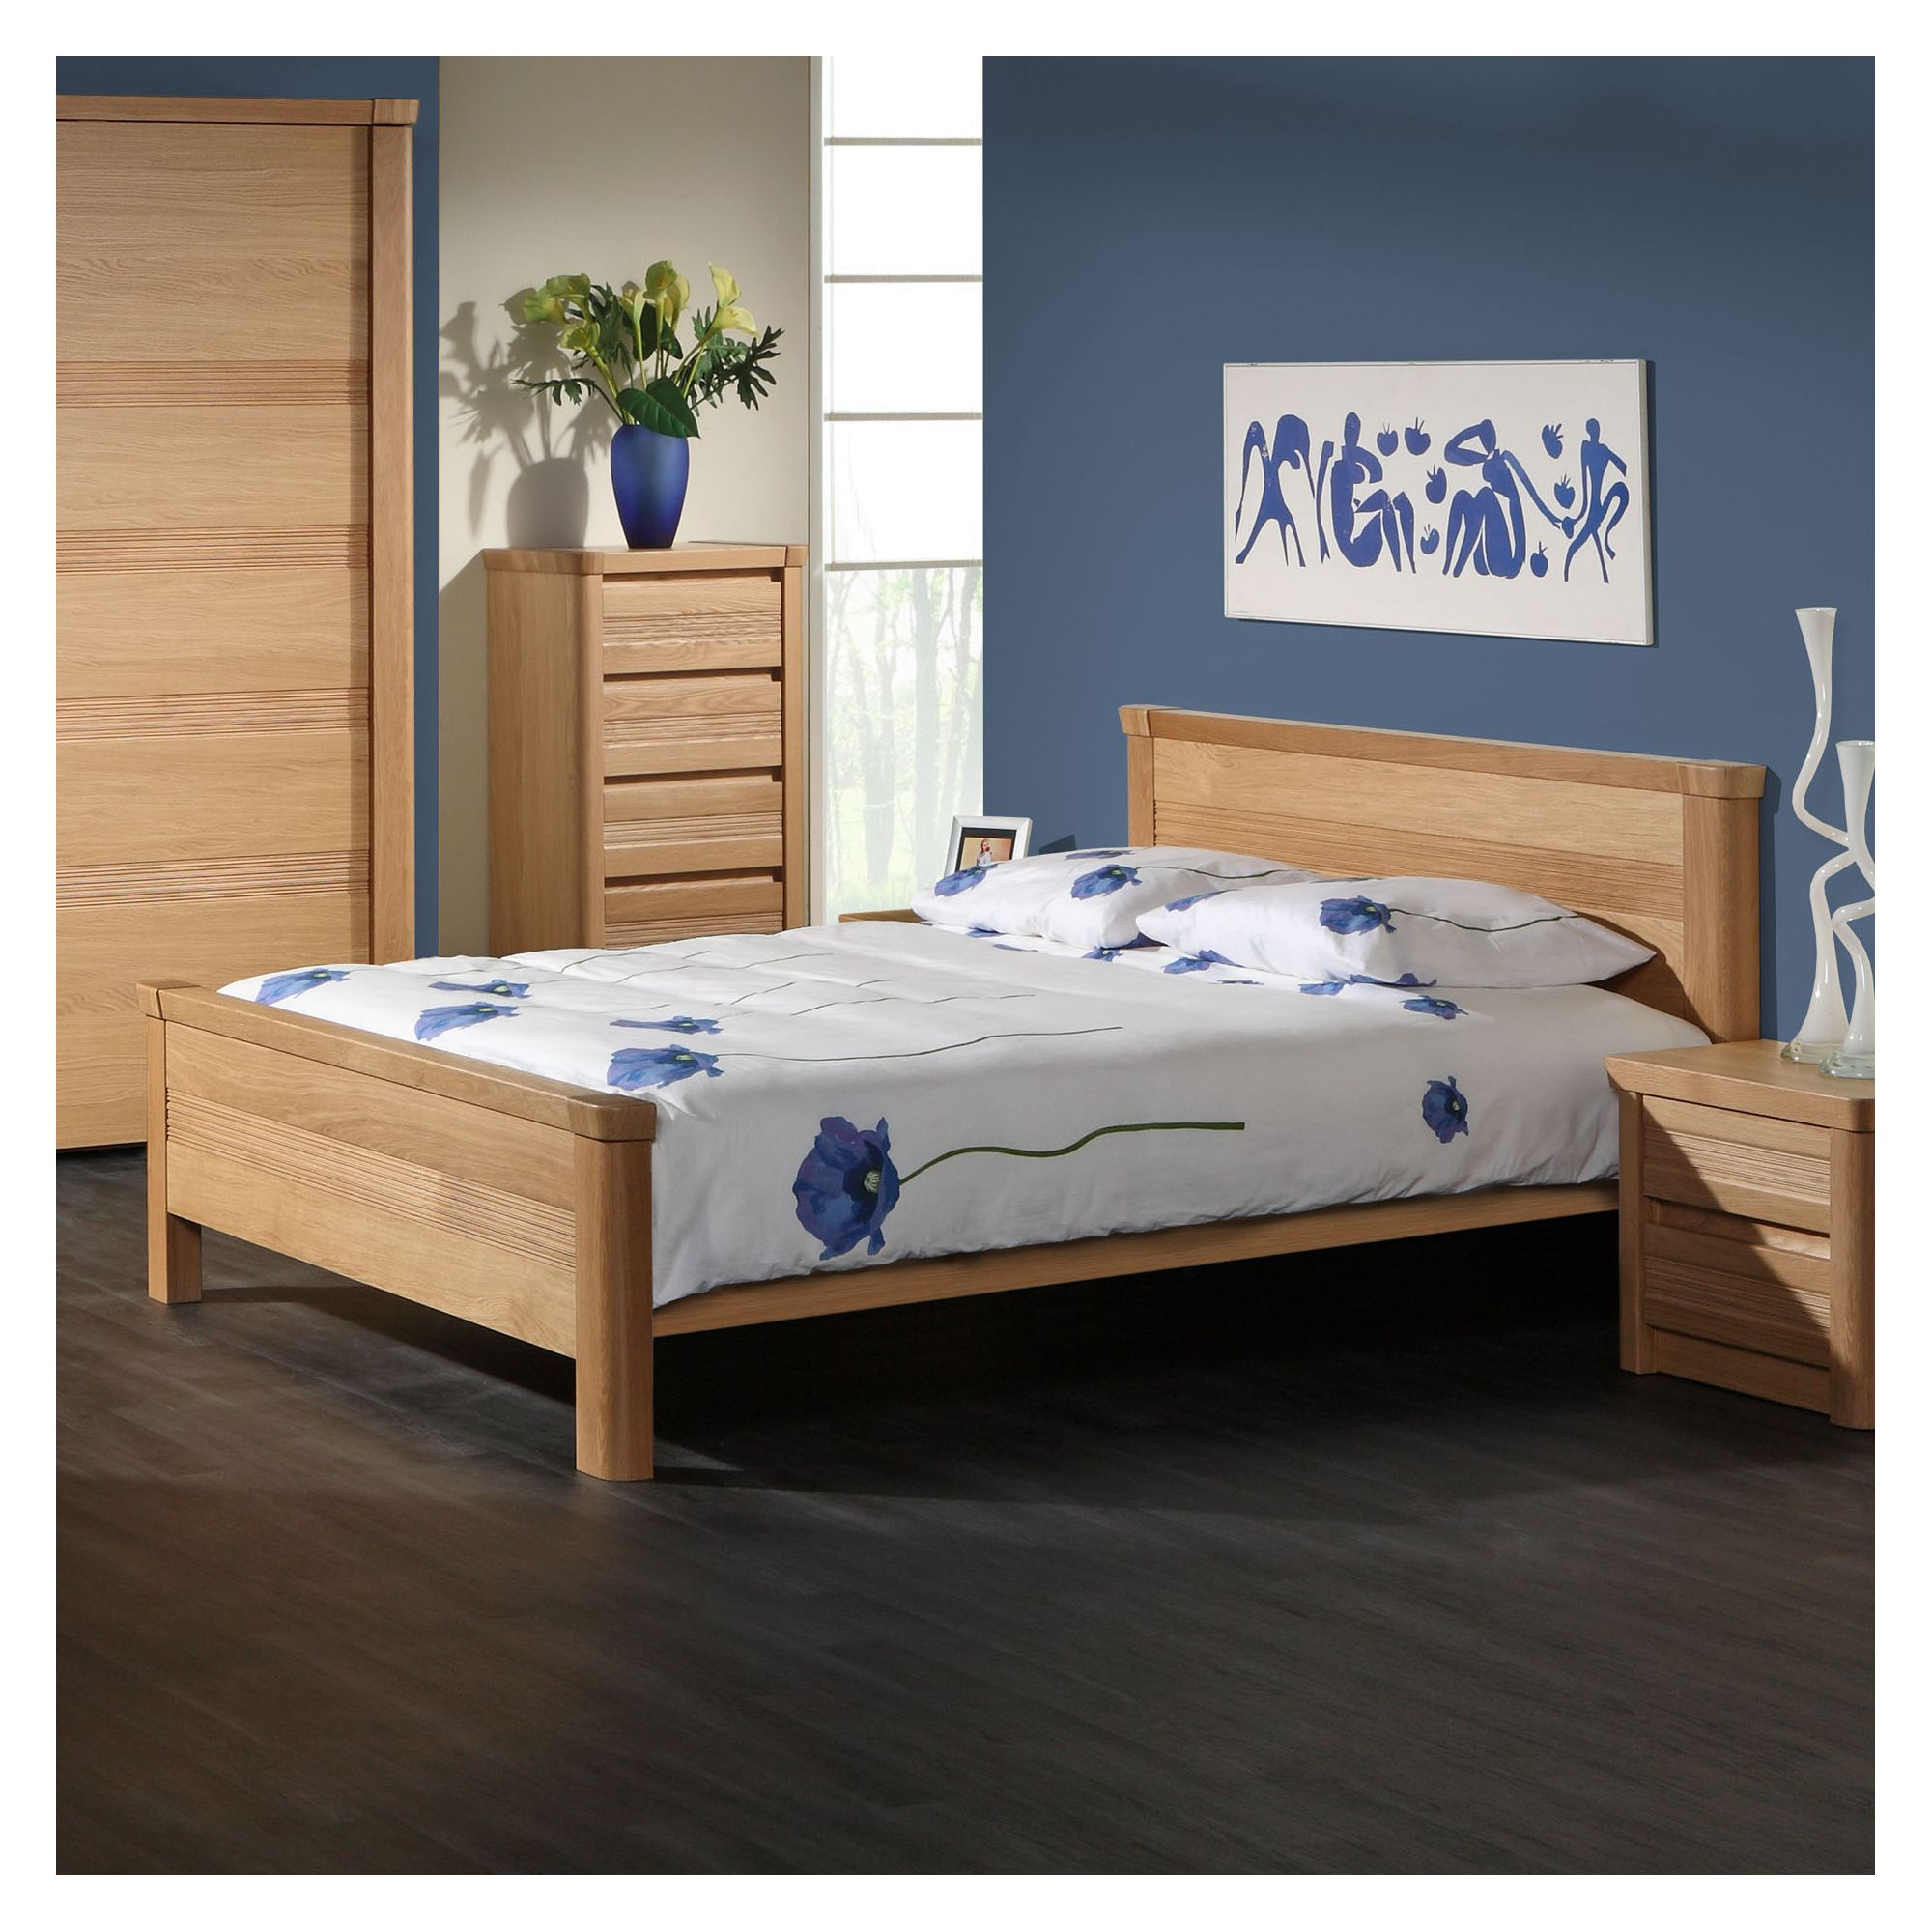 Sleepline Mundo Bed - European Double - Mat Lacquered at Tesco Direct